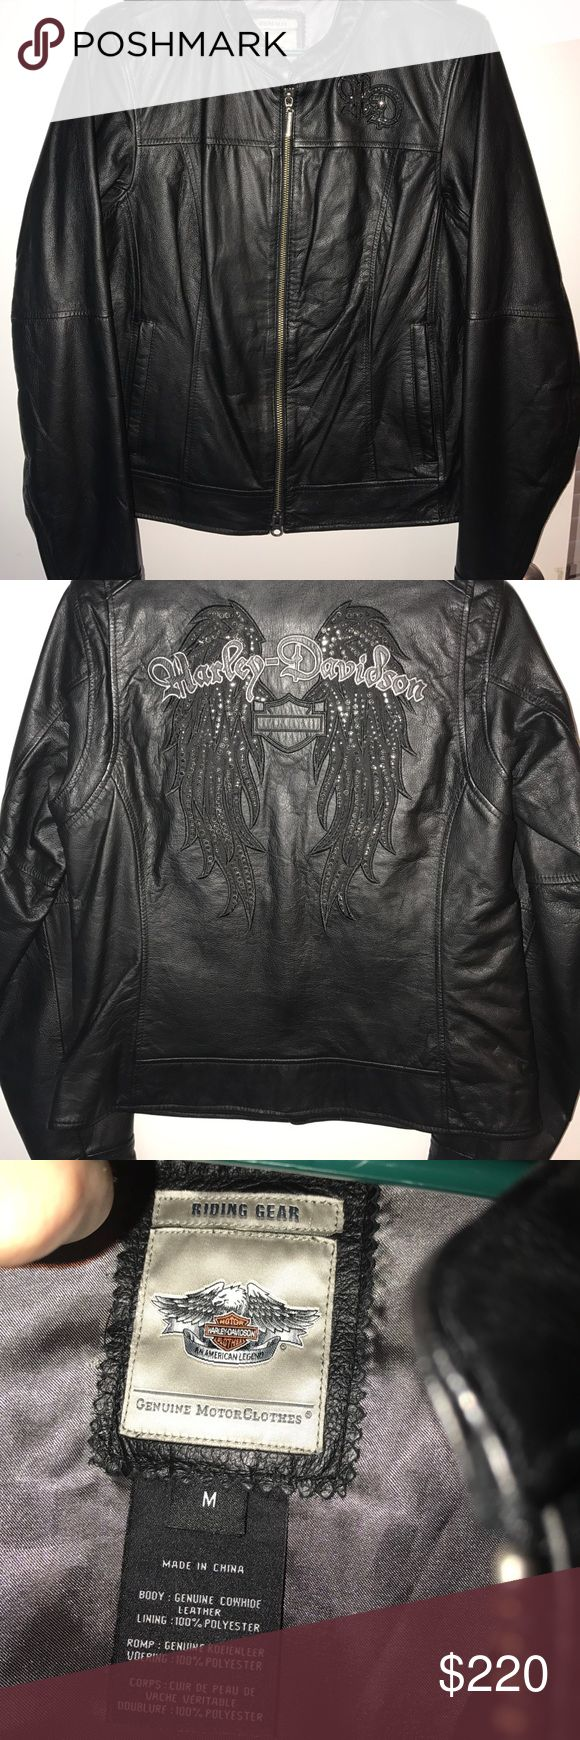 Harley Davidson leather jacket Worn only 3 times. Beautiful Harley jacket feel free to ask for more pictures Harley-Davidson Jackets & Coats